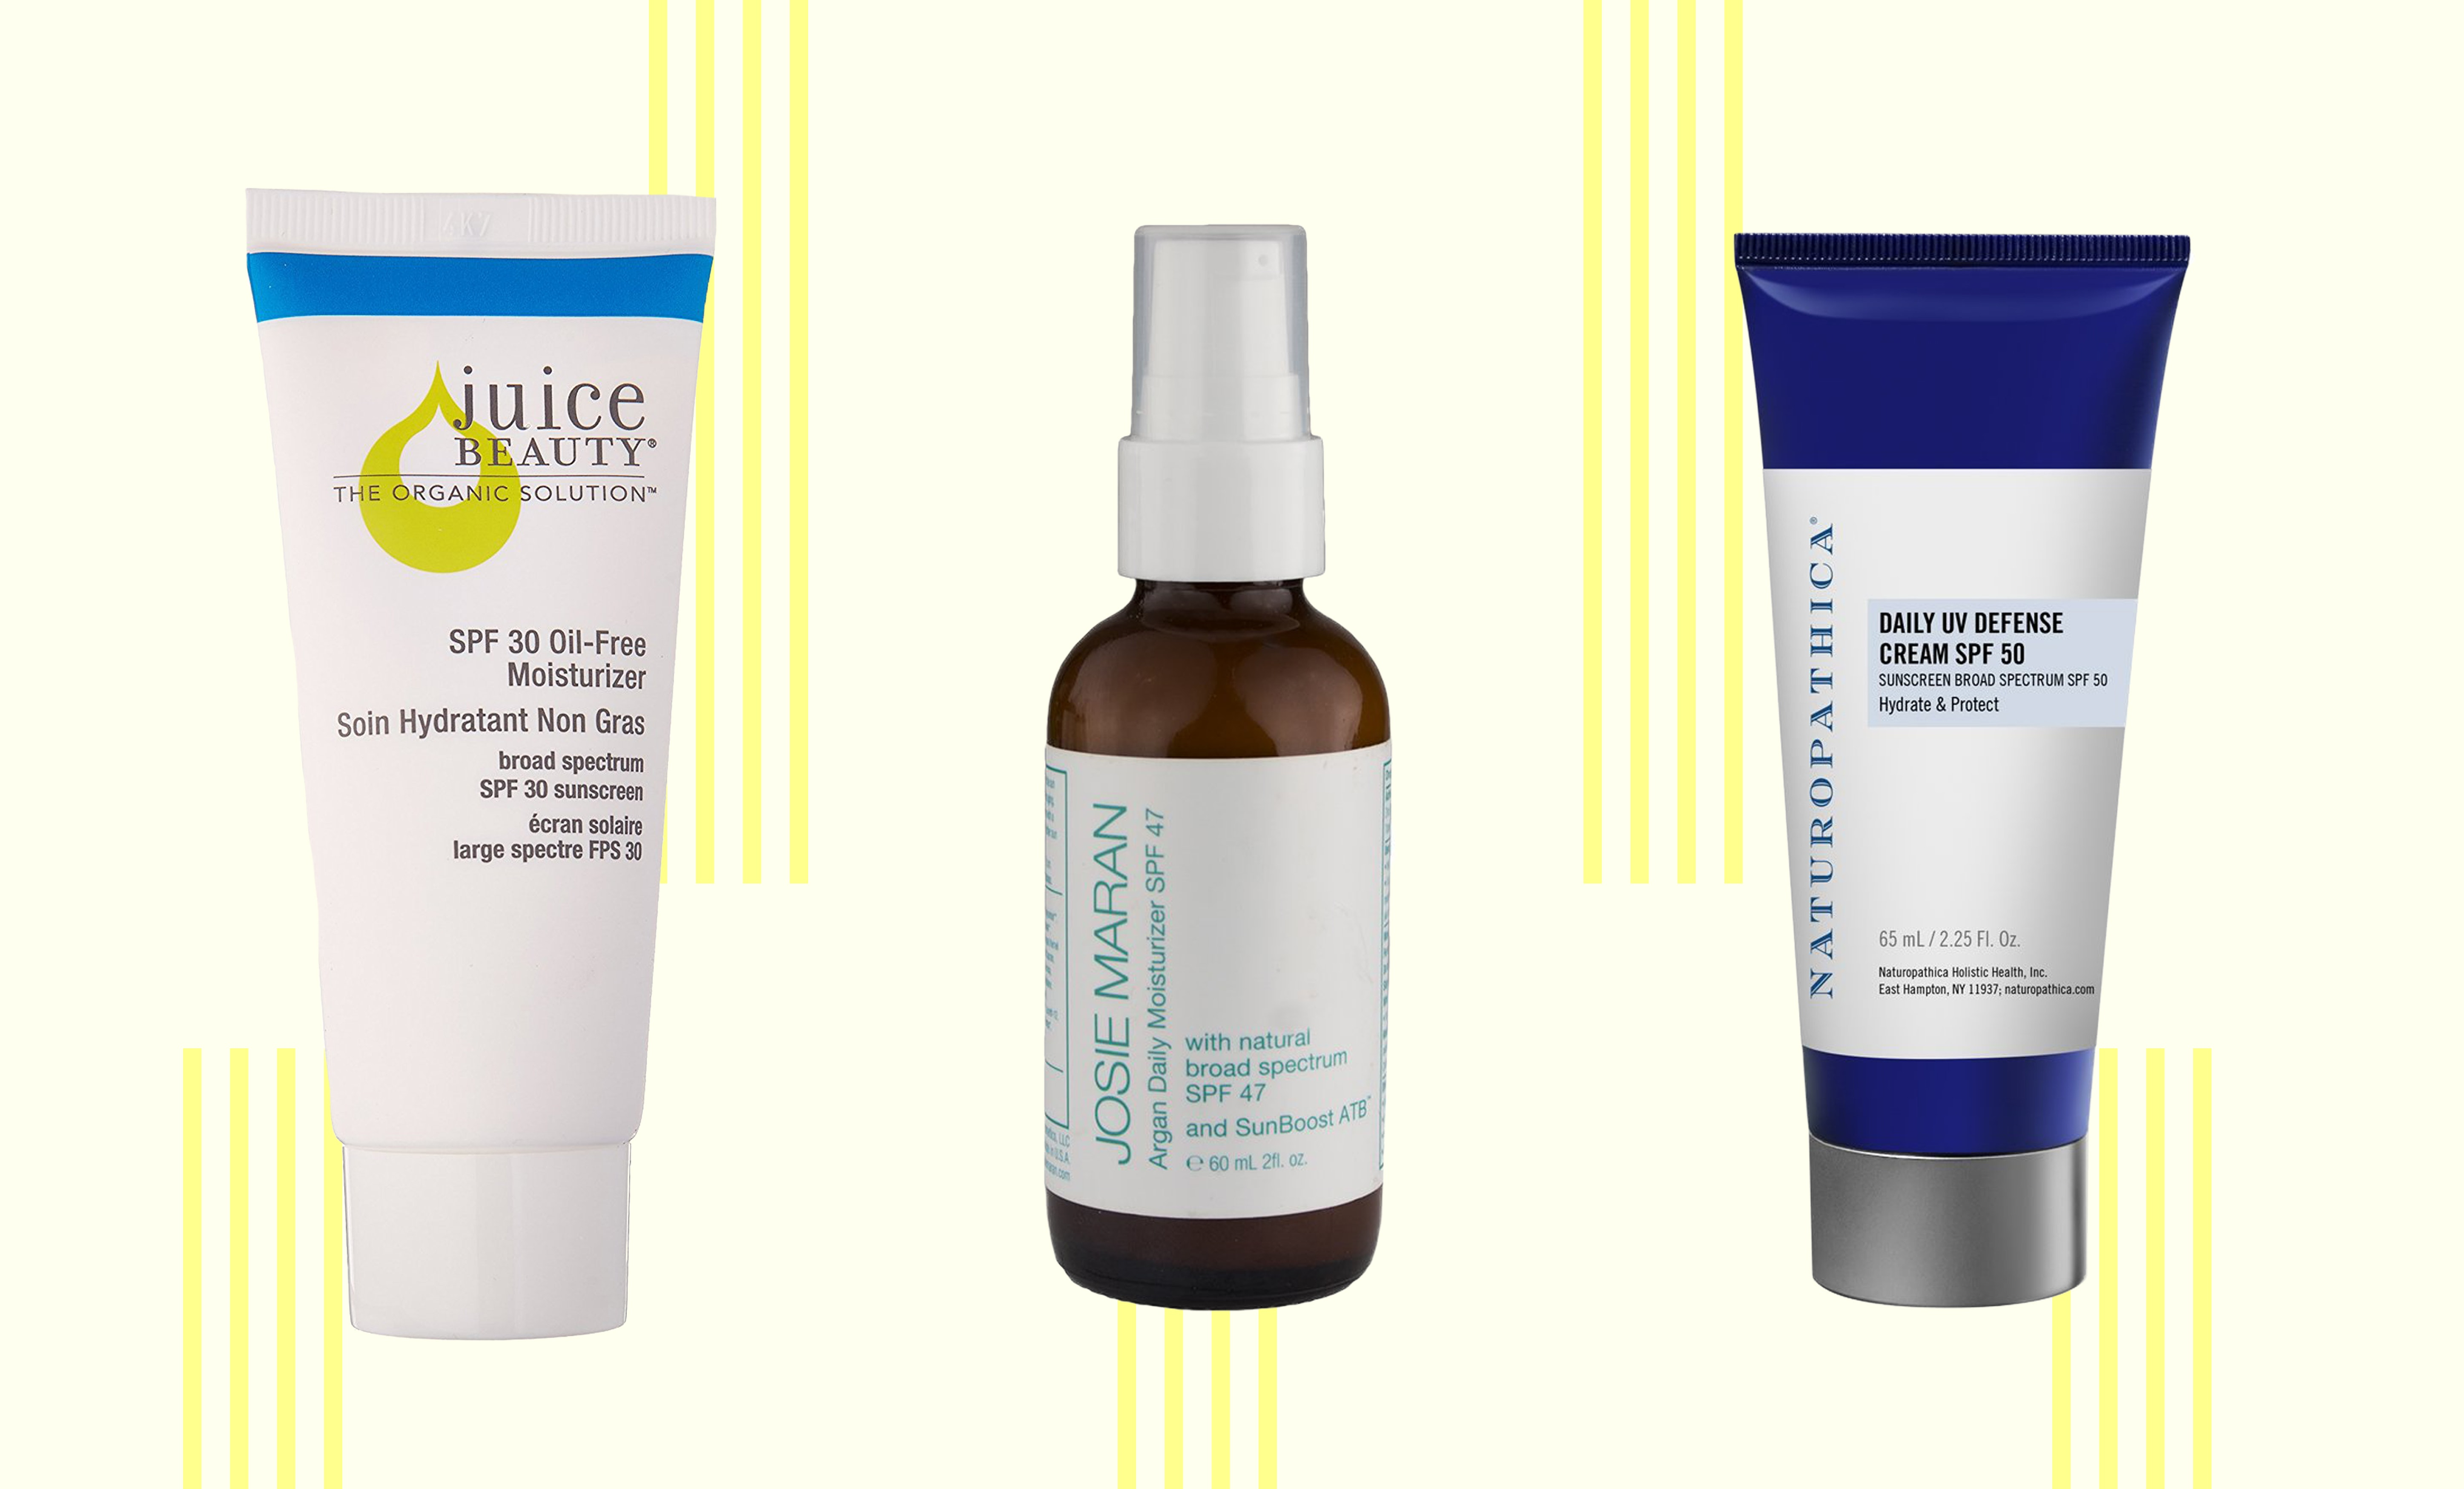 Watch 10 Best Organic Face Creams You Should Try Today video